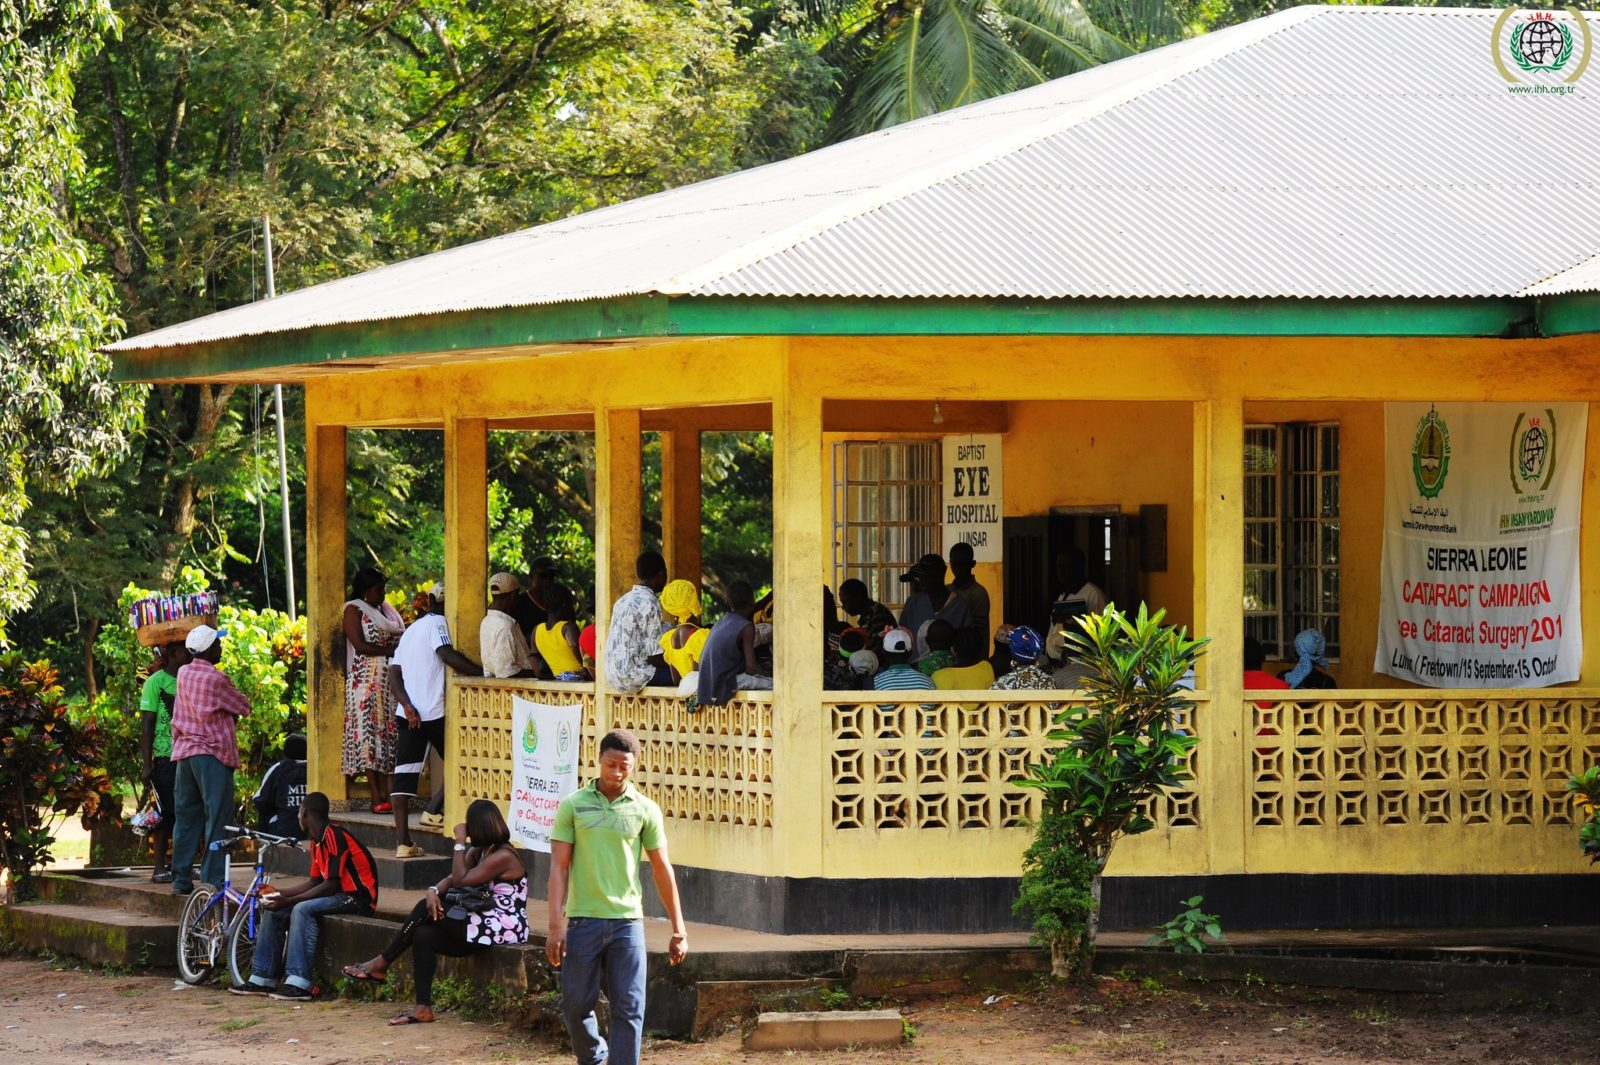 Eye hospital in Lunsar, Sierra Leone